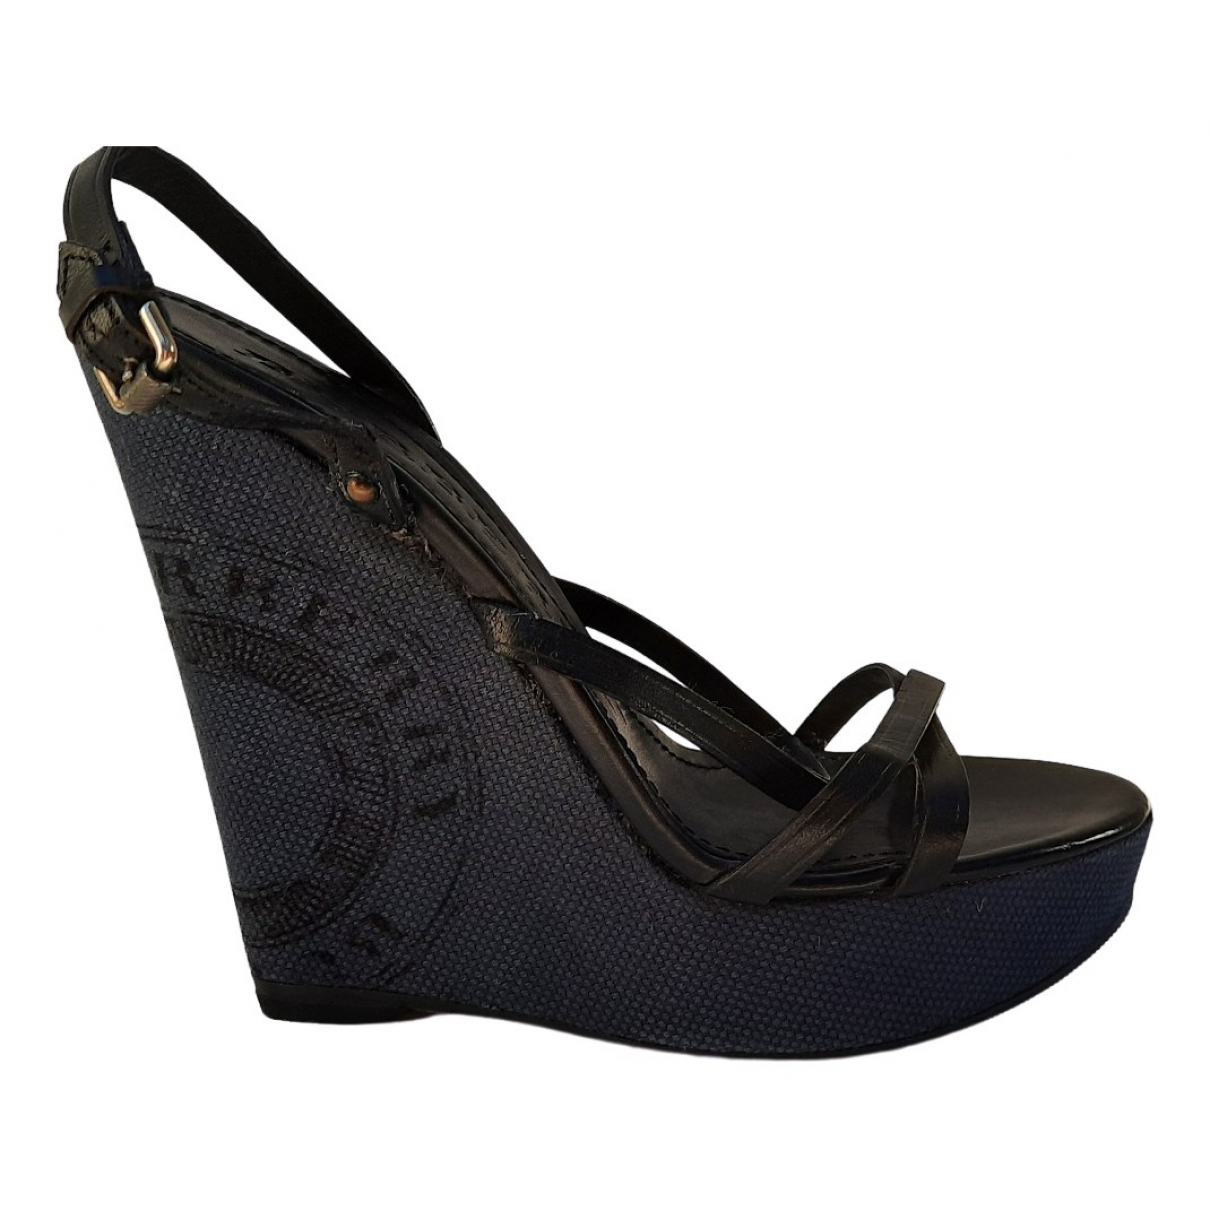 Burberry \N Black Leather Sandals for Women 38 EU